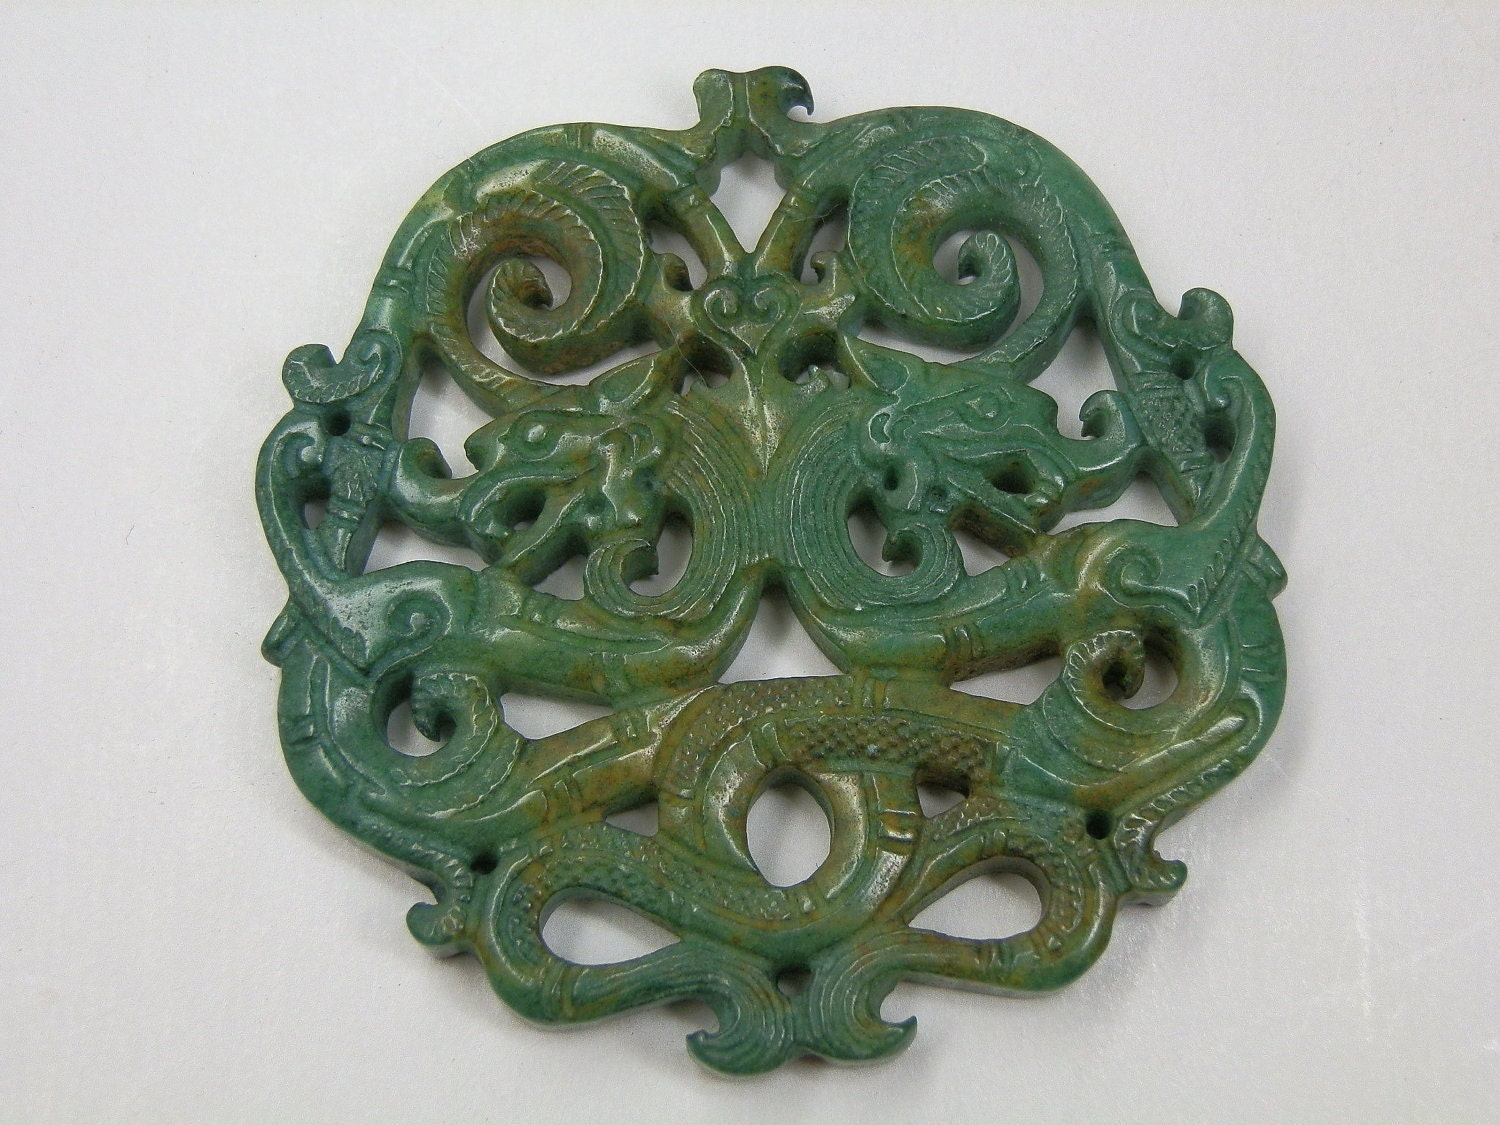 Chinese Jade Amulet Dragons Carved On Both Sides Green